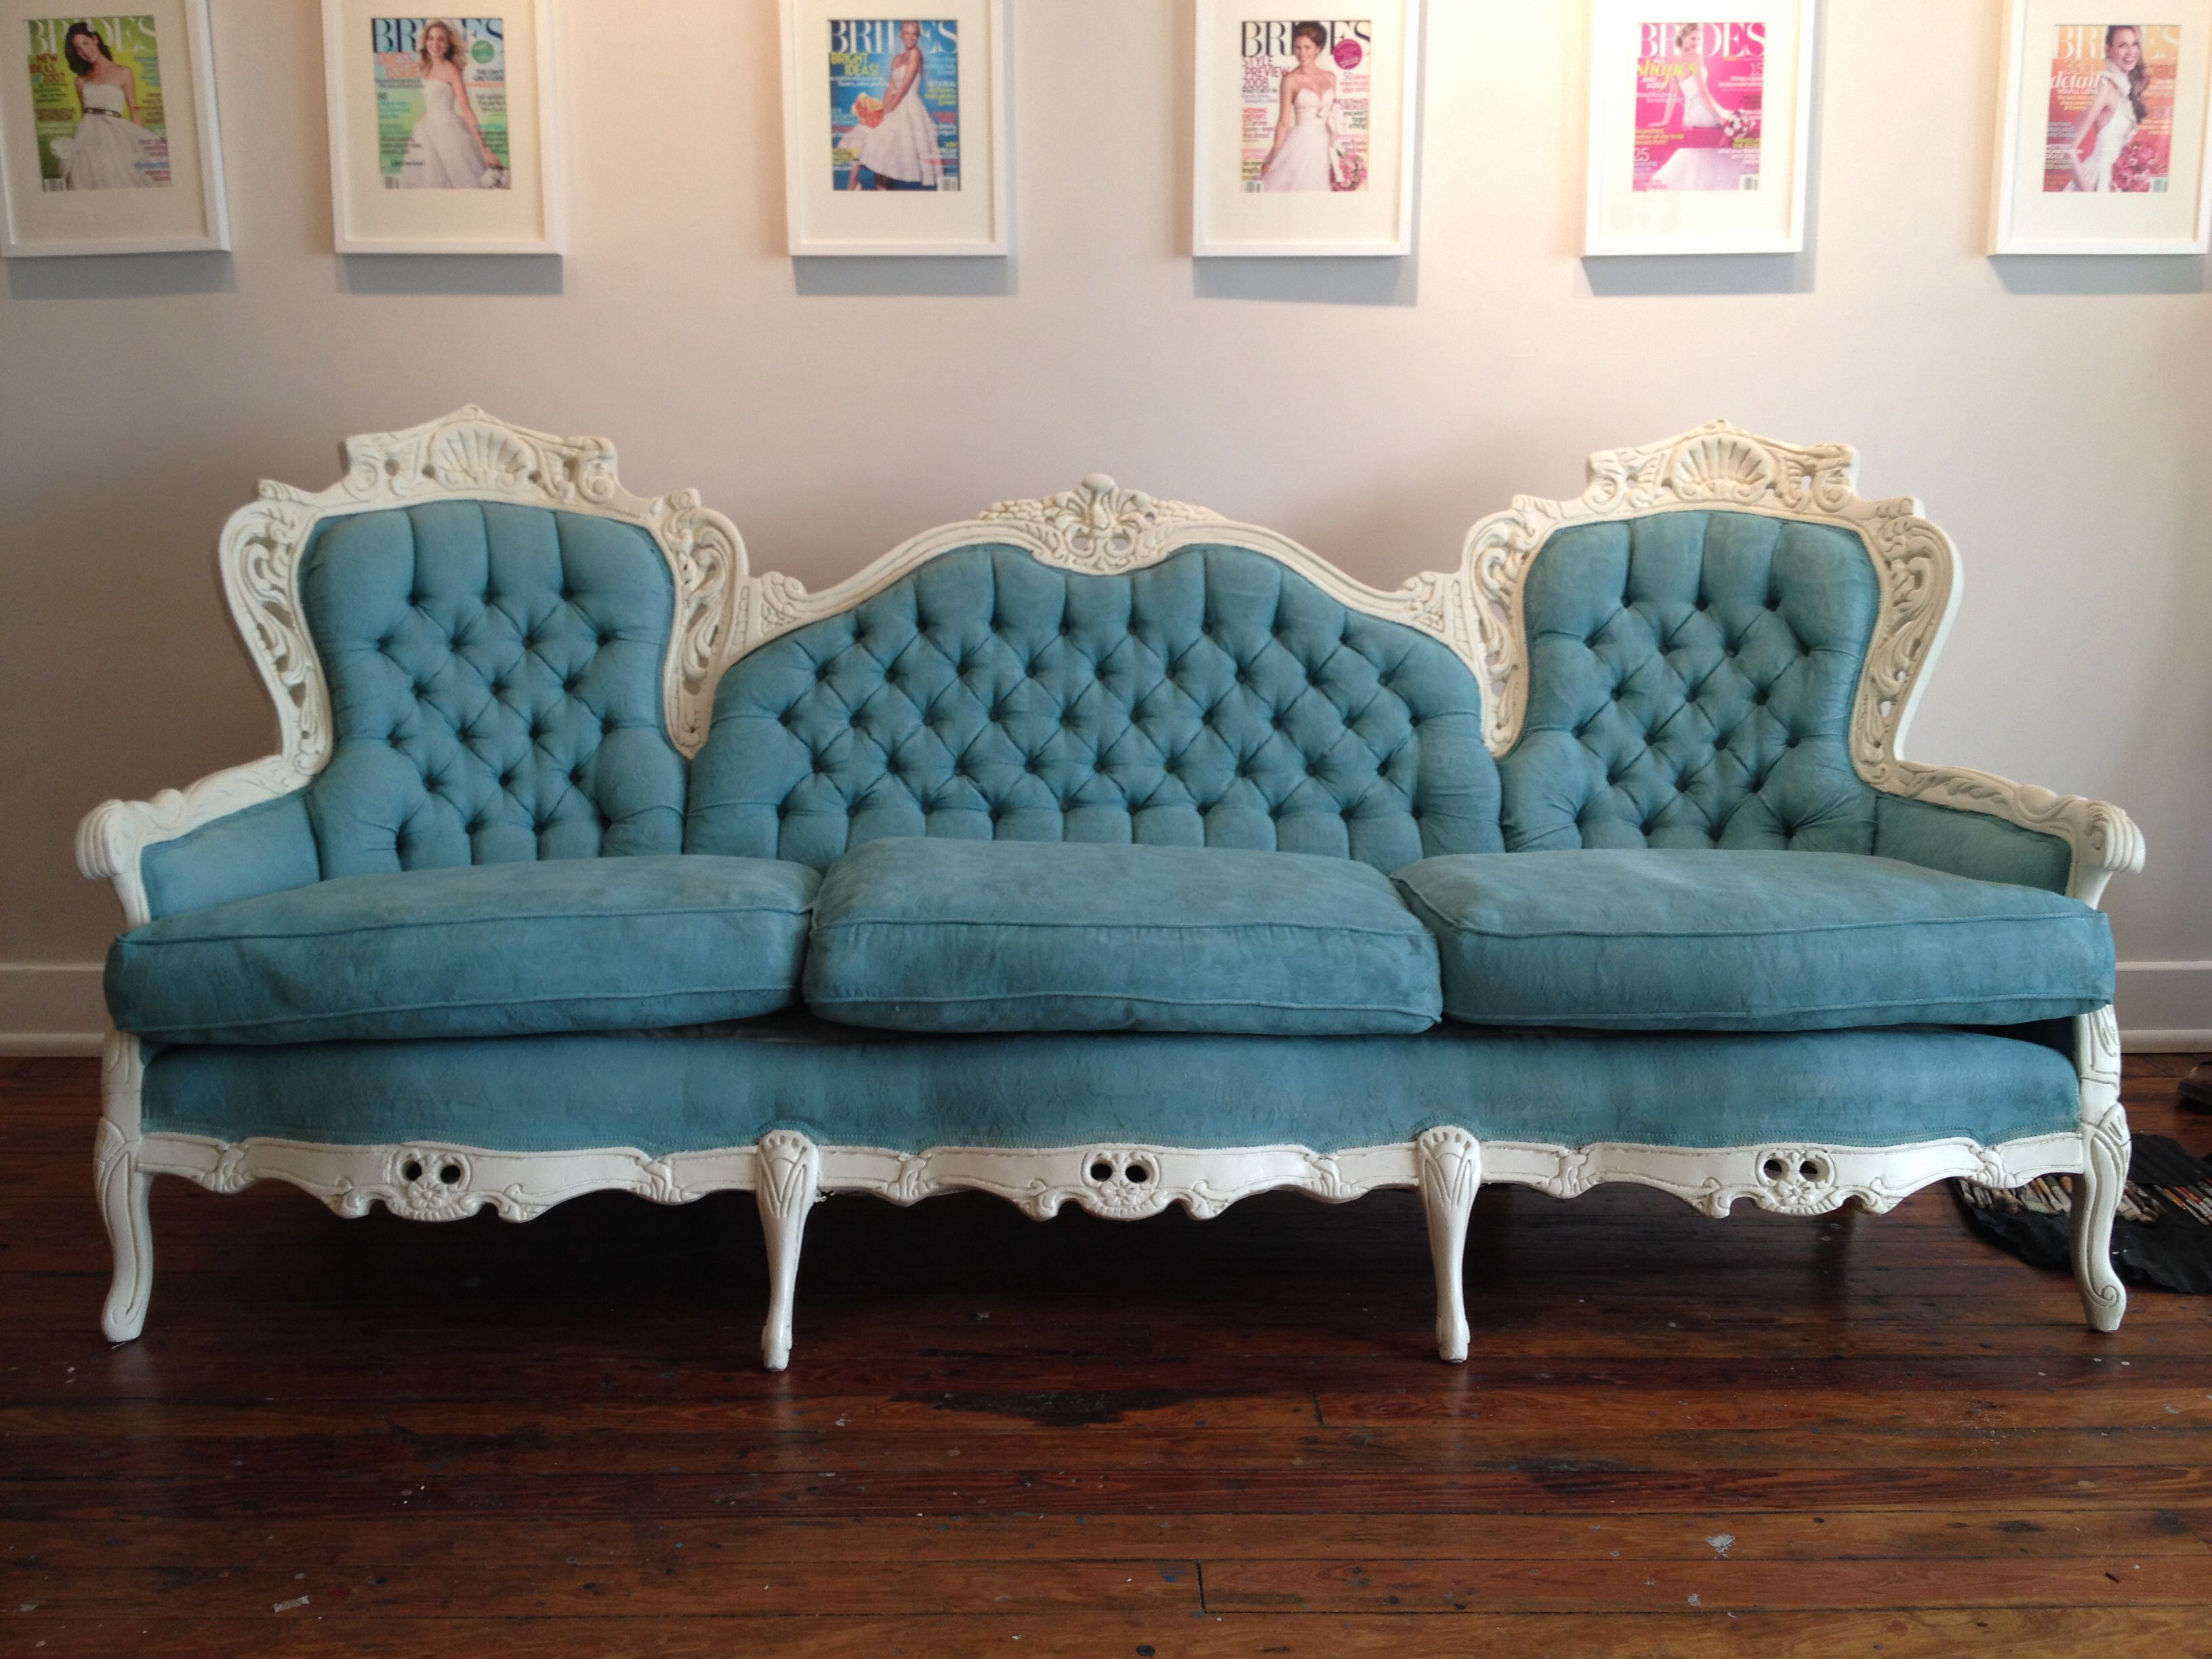 Superbe Vintage Italian Sofa Redesigned With Chalk Paint® In Provence And Old  White. Custom Painted For A Vintage Wedding Event By TLC Design Studio